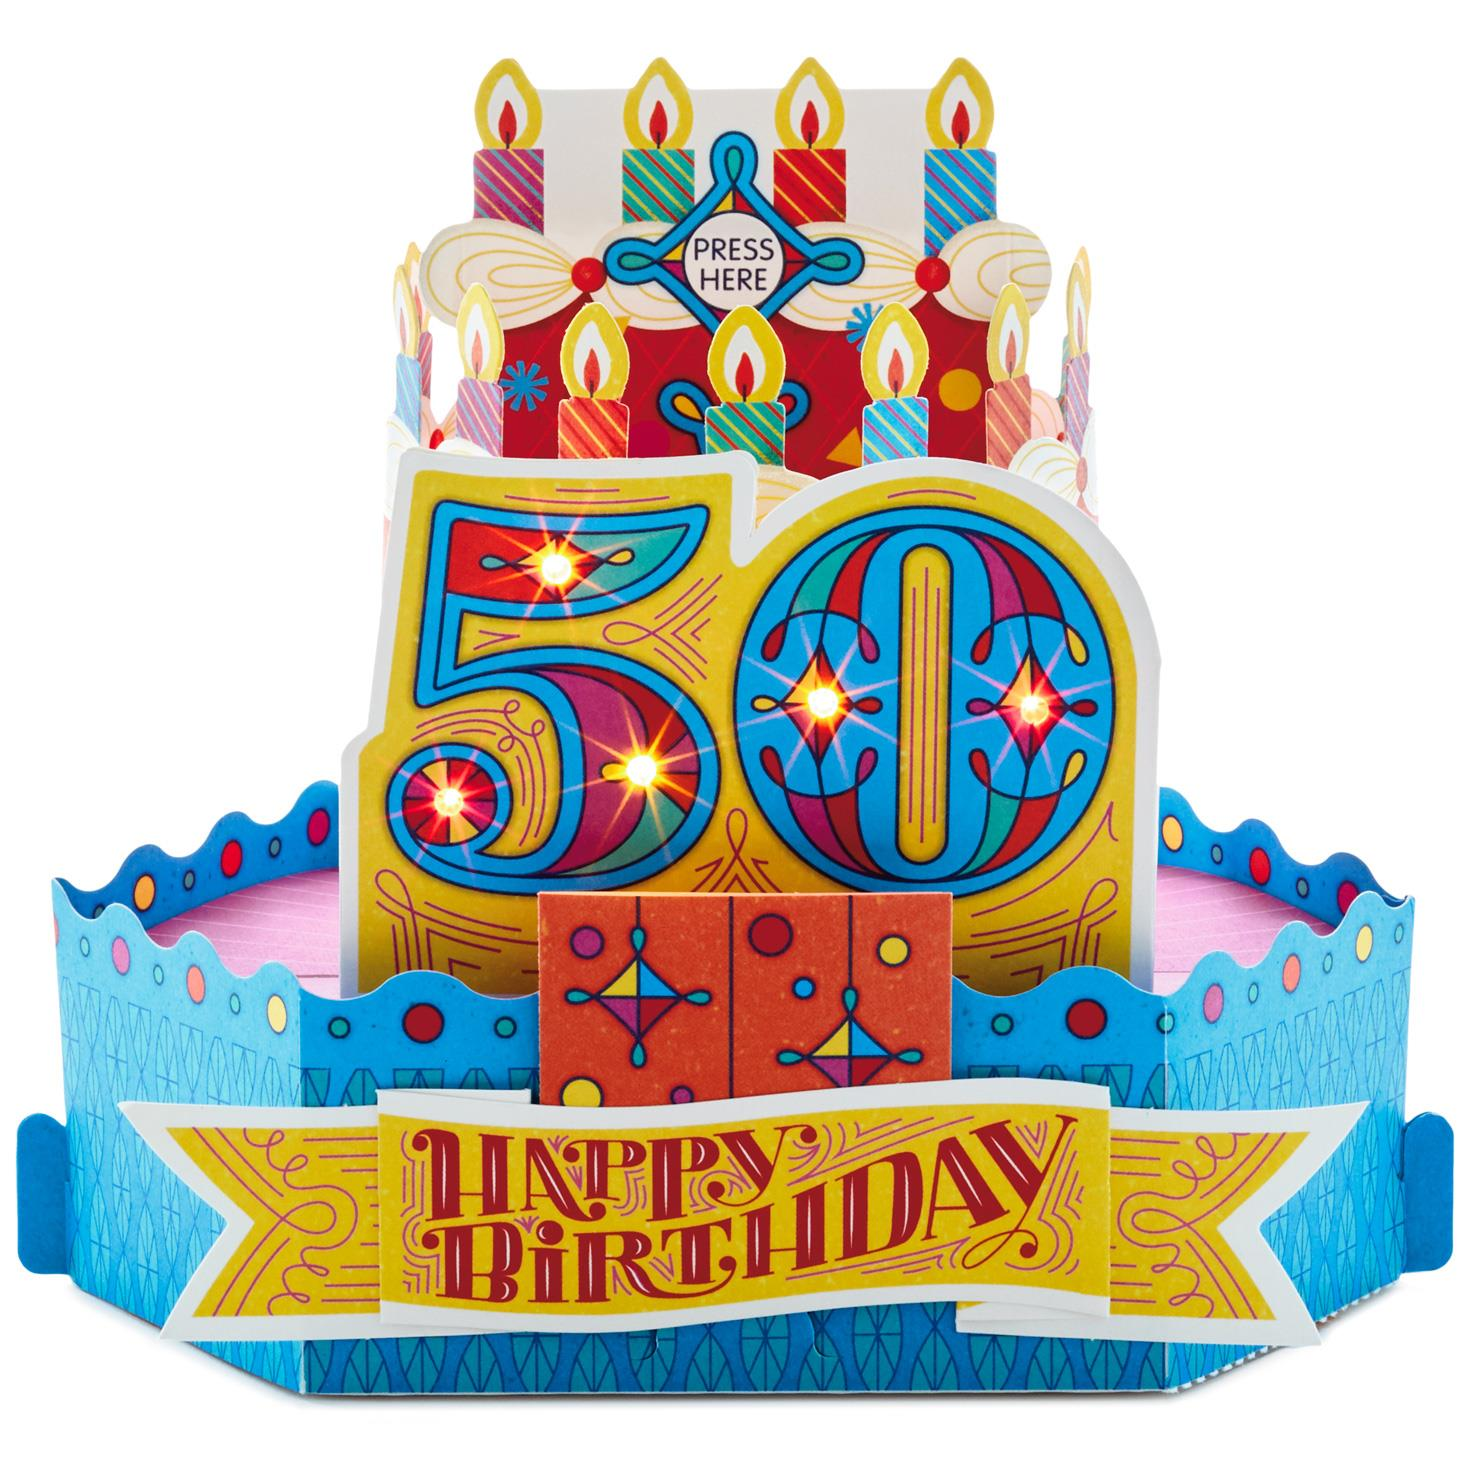 50th Birthday Cake With Candles Pop Up Musical Birthday